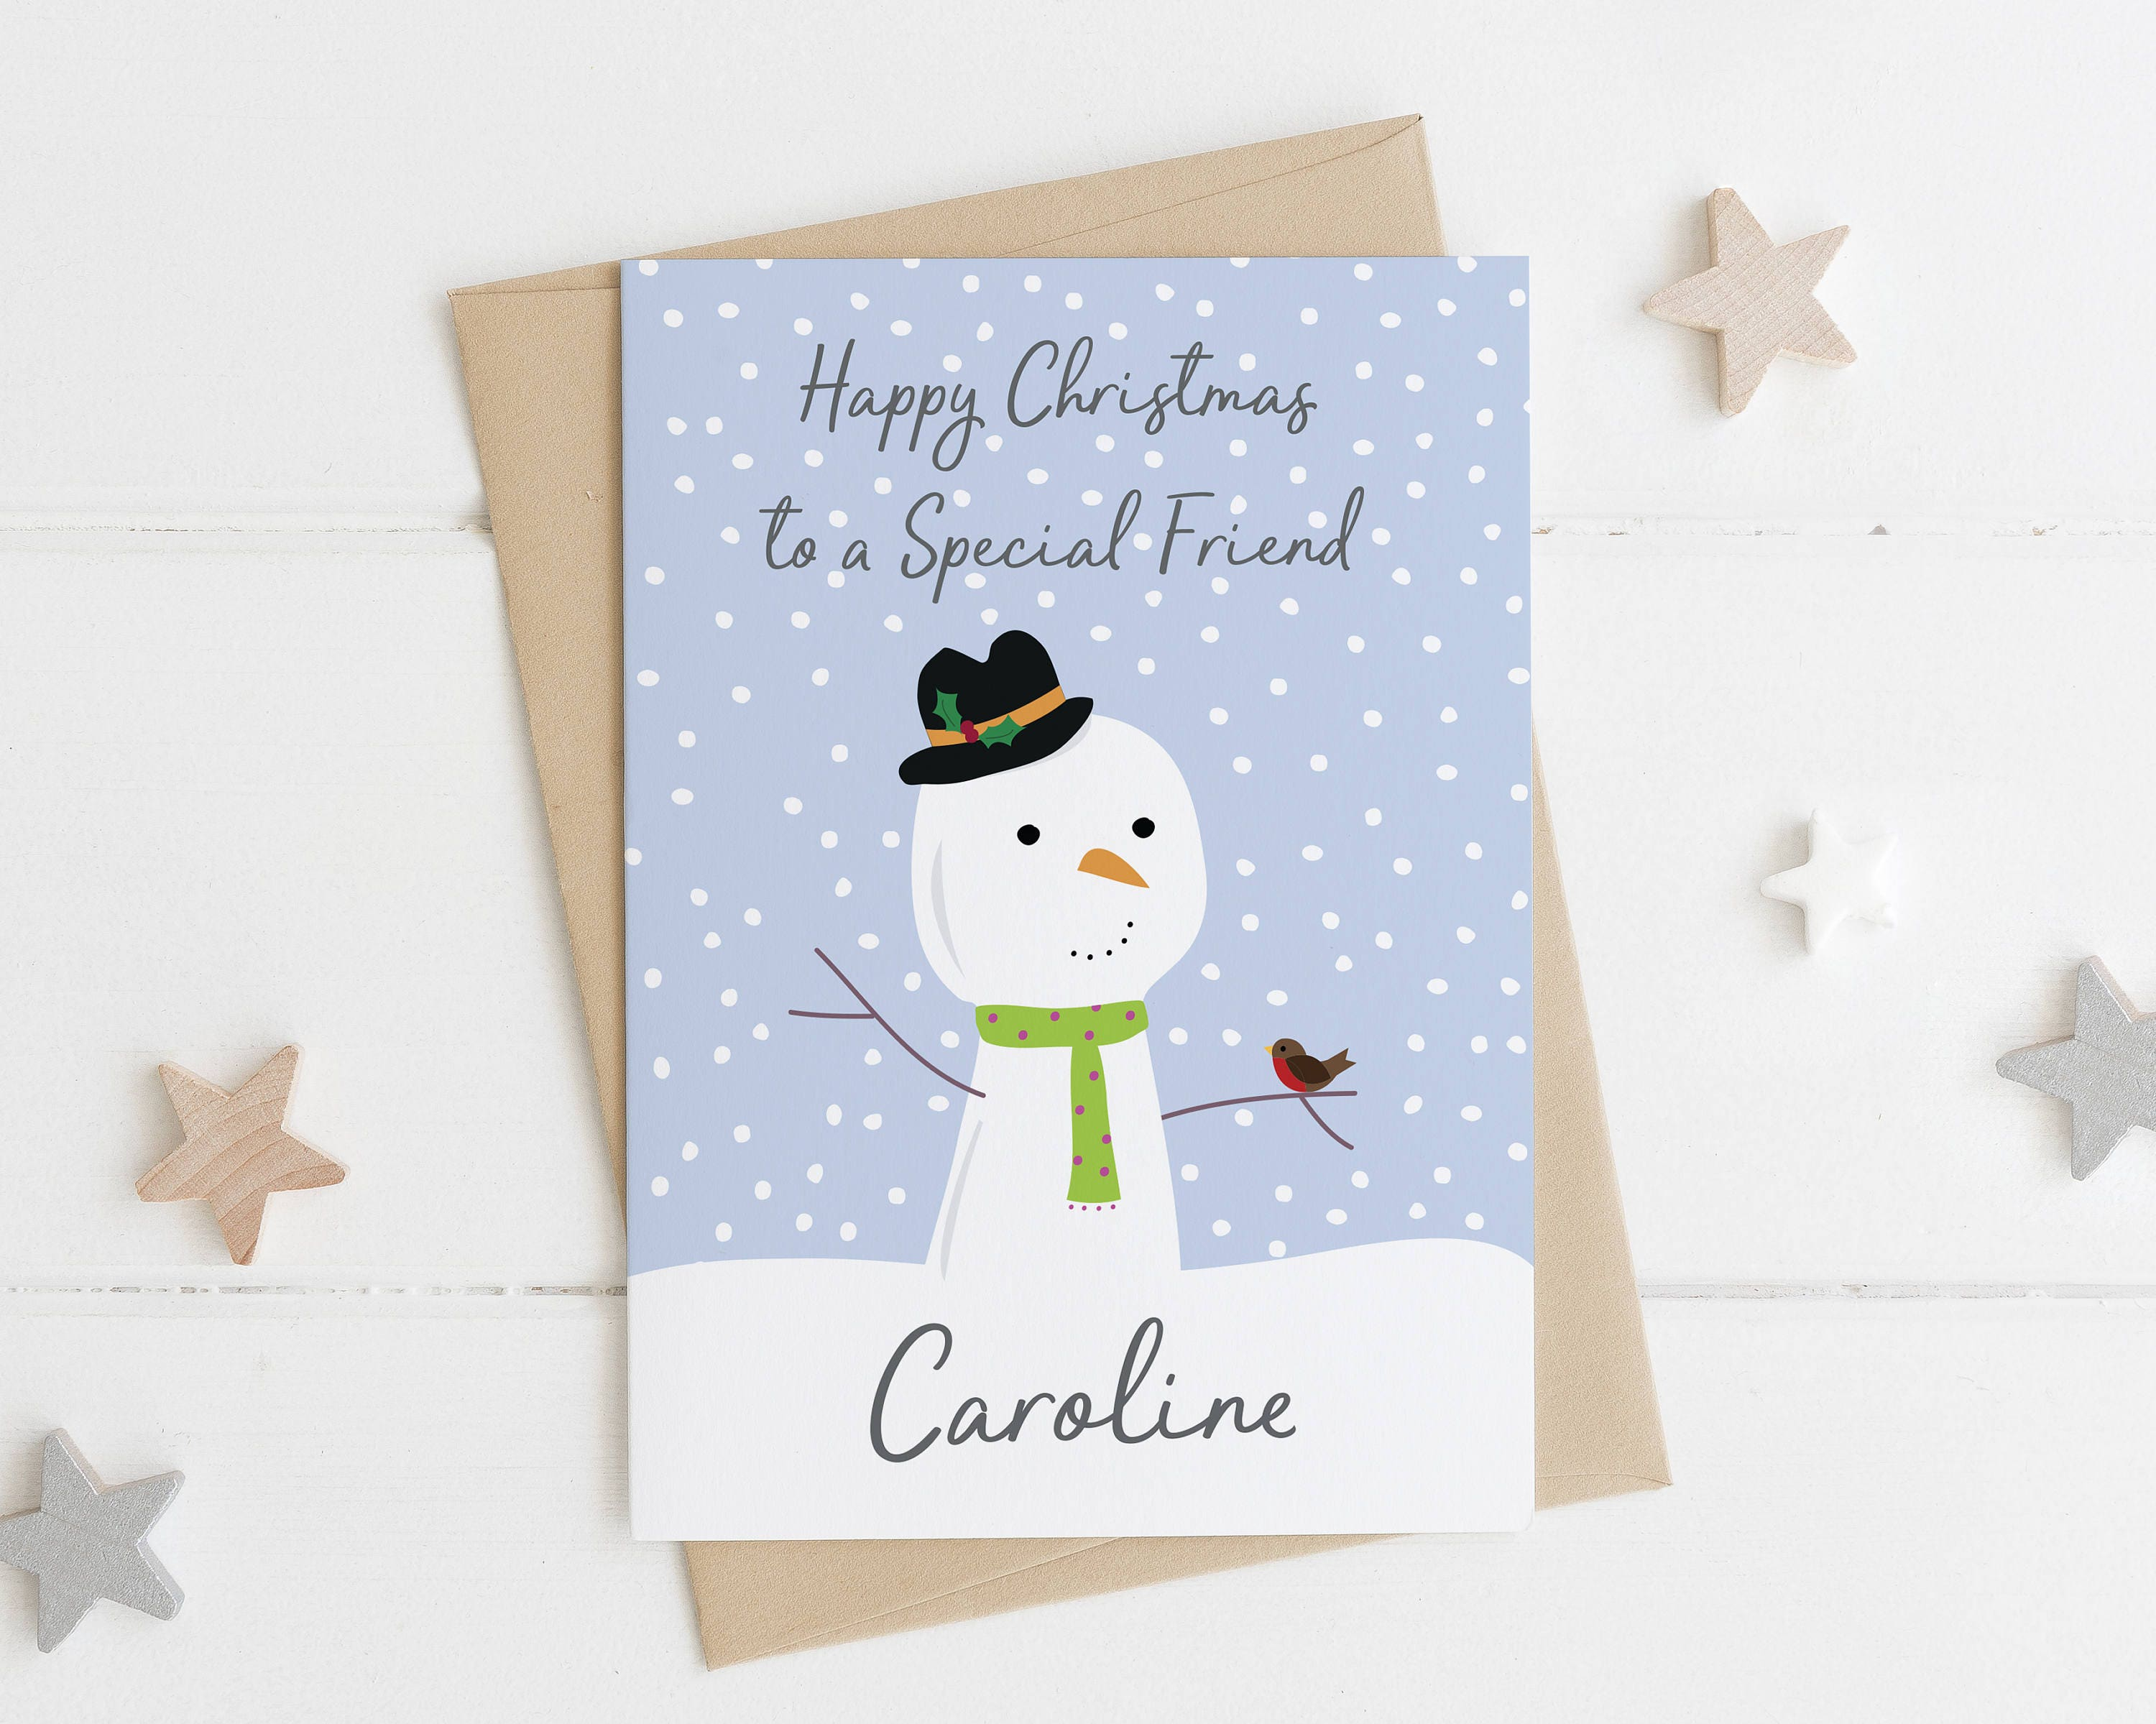 Special friend christmas card xmas card for a best friend description send a thoughtful card to a special friend this christmas kristyandbryce Gallery